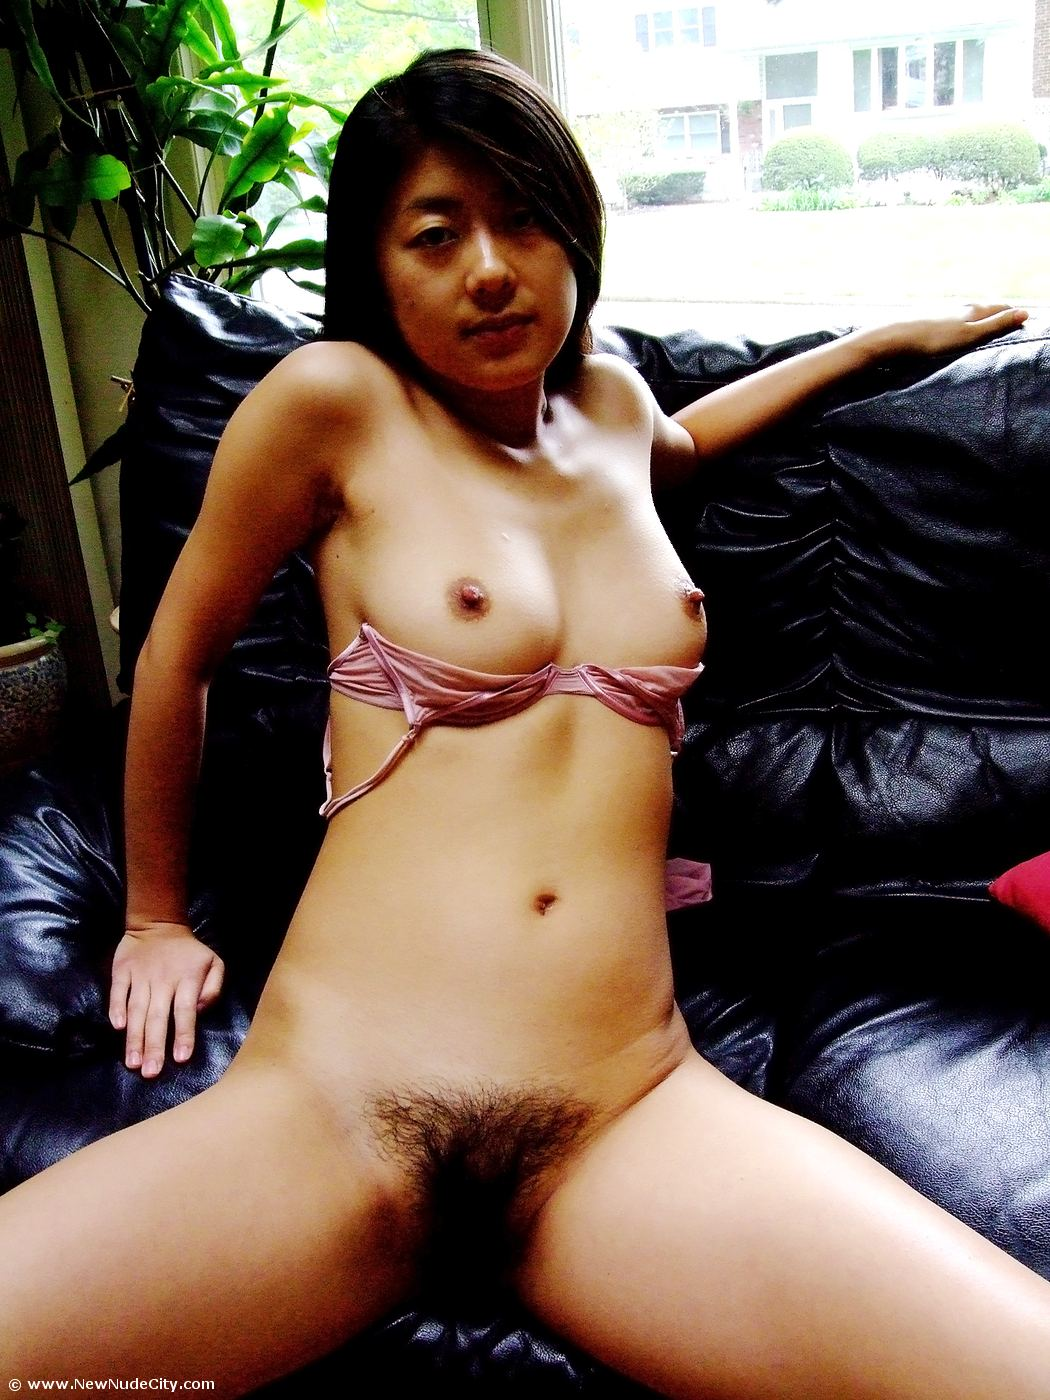 Cute Japanese Cutie Shows Off On Livecam